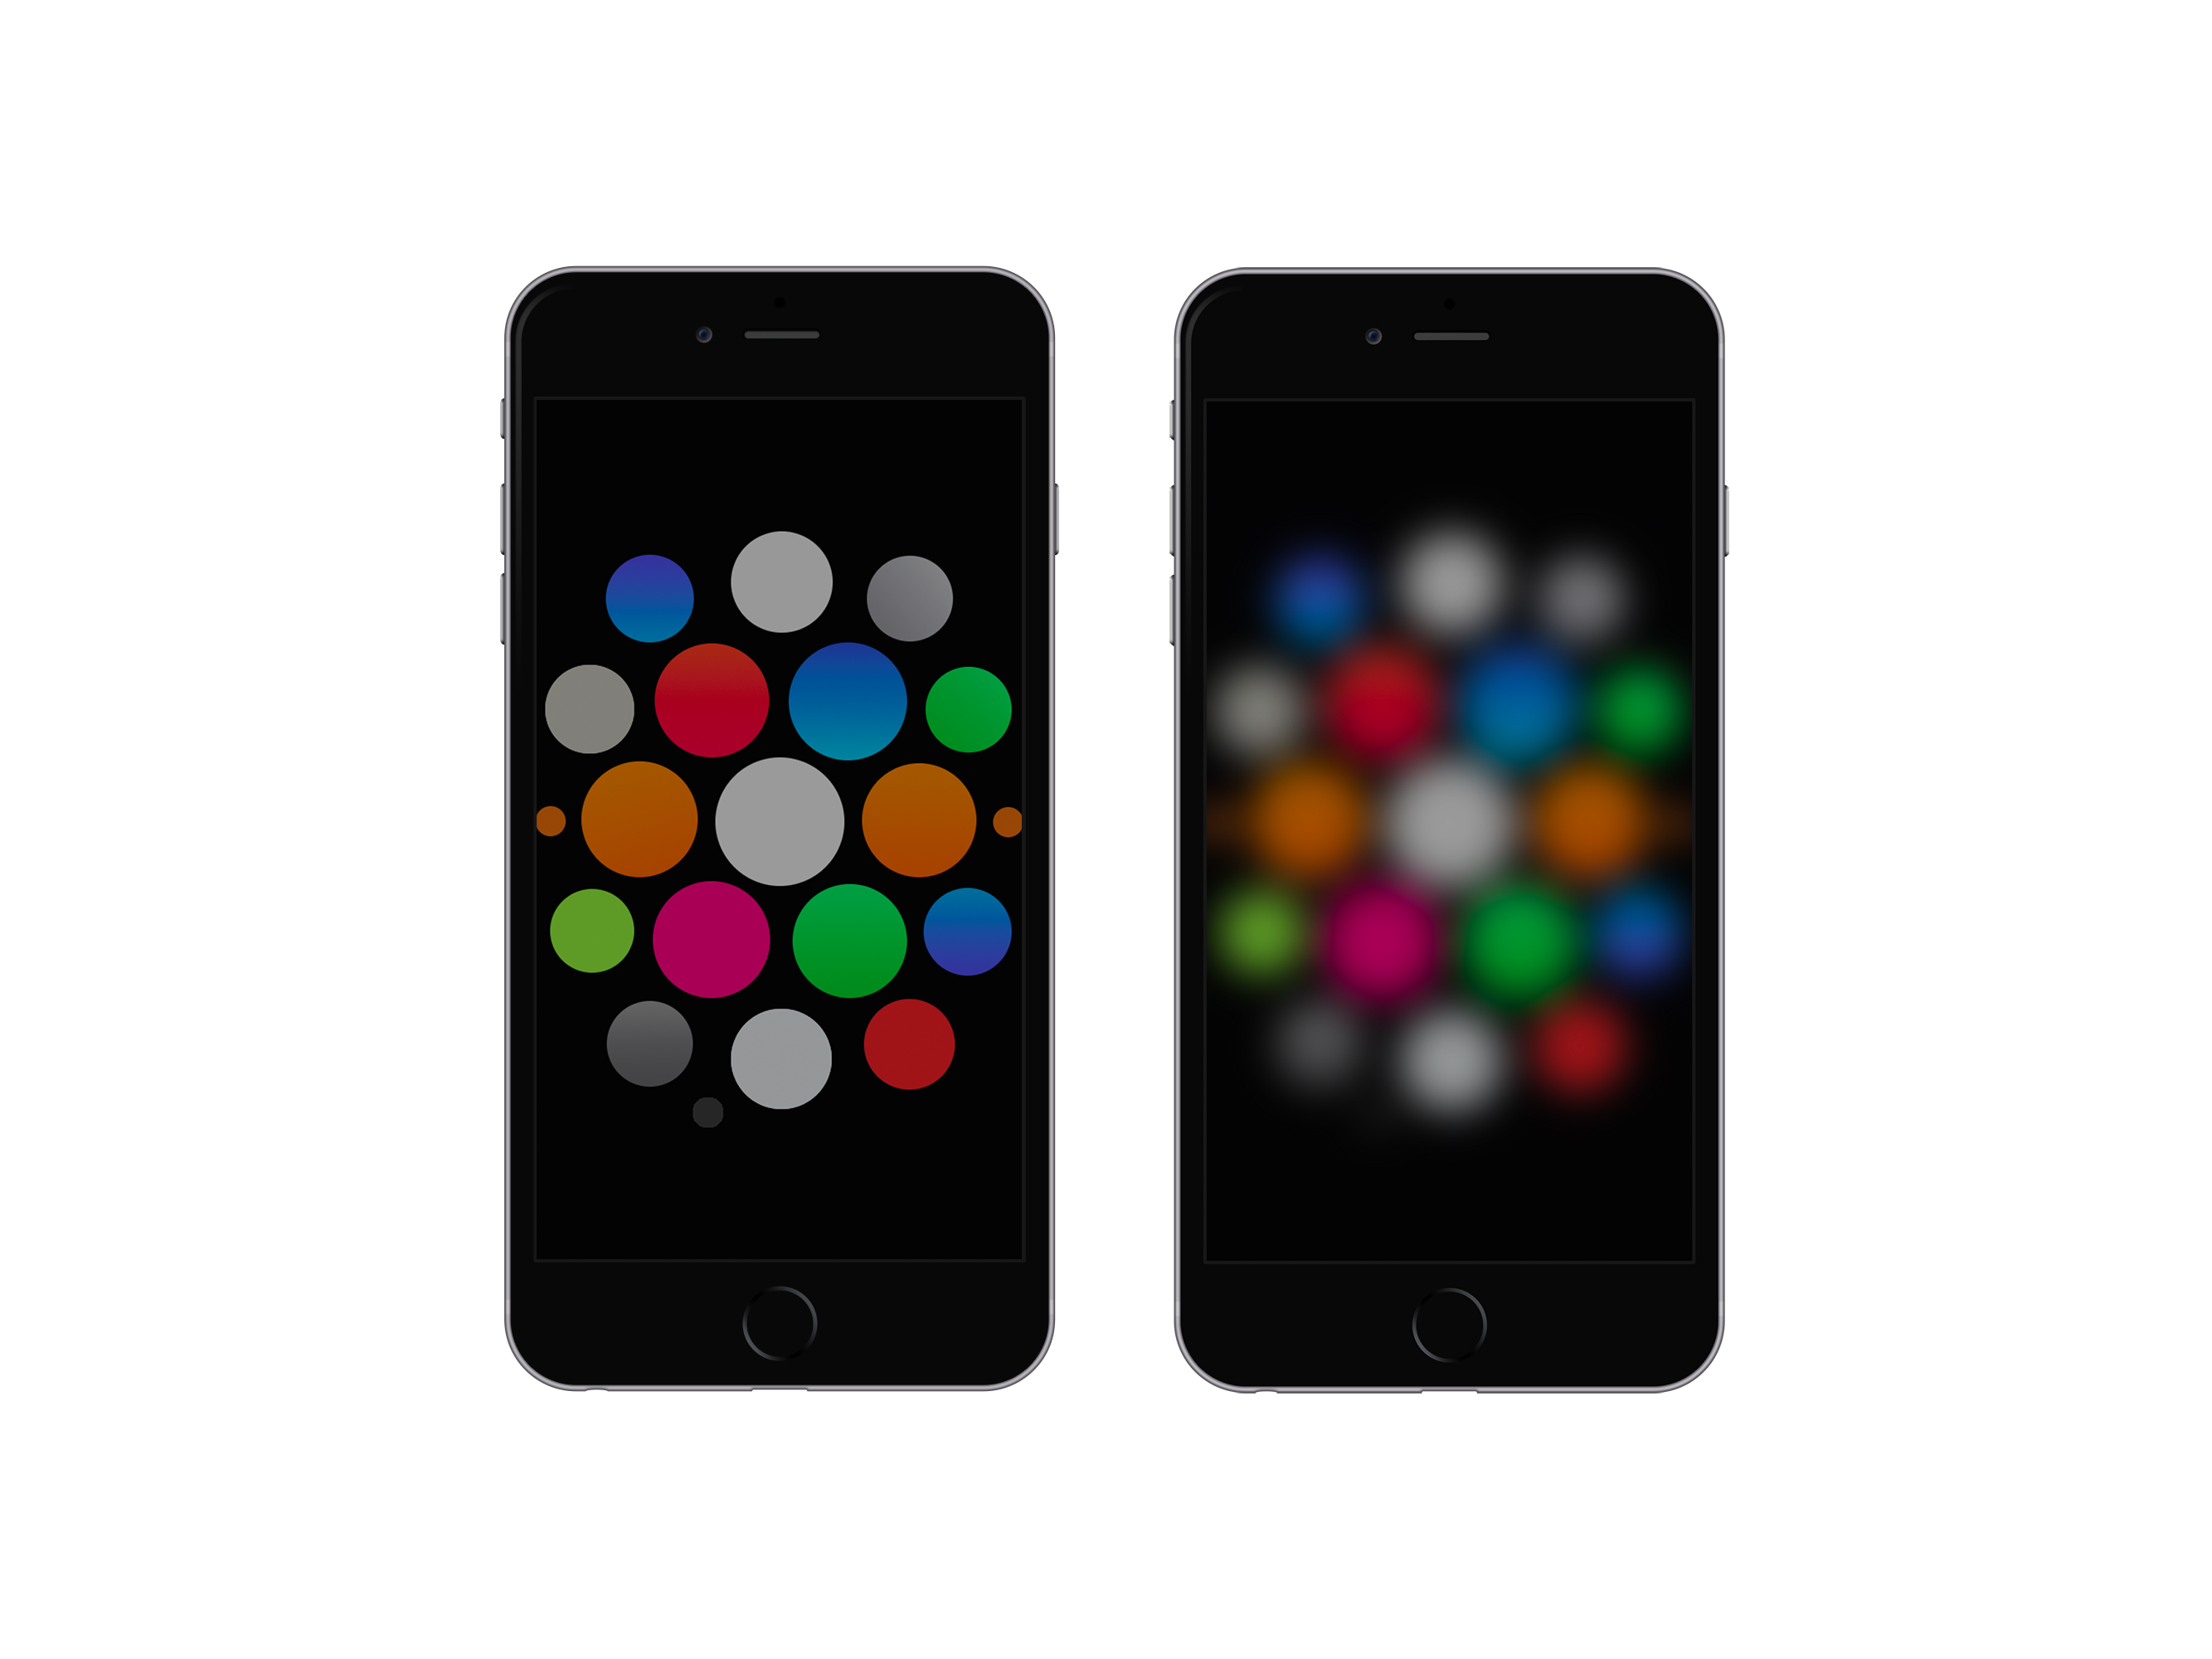 Watch Dark Wallpaper for iPhone 6 and 6 Plus by kiwimanjaro on 2667x2000